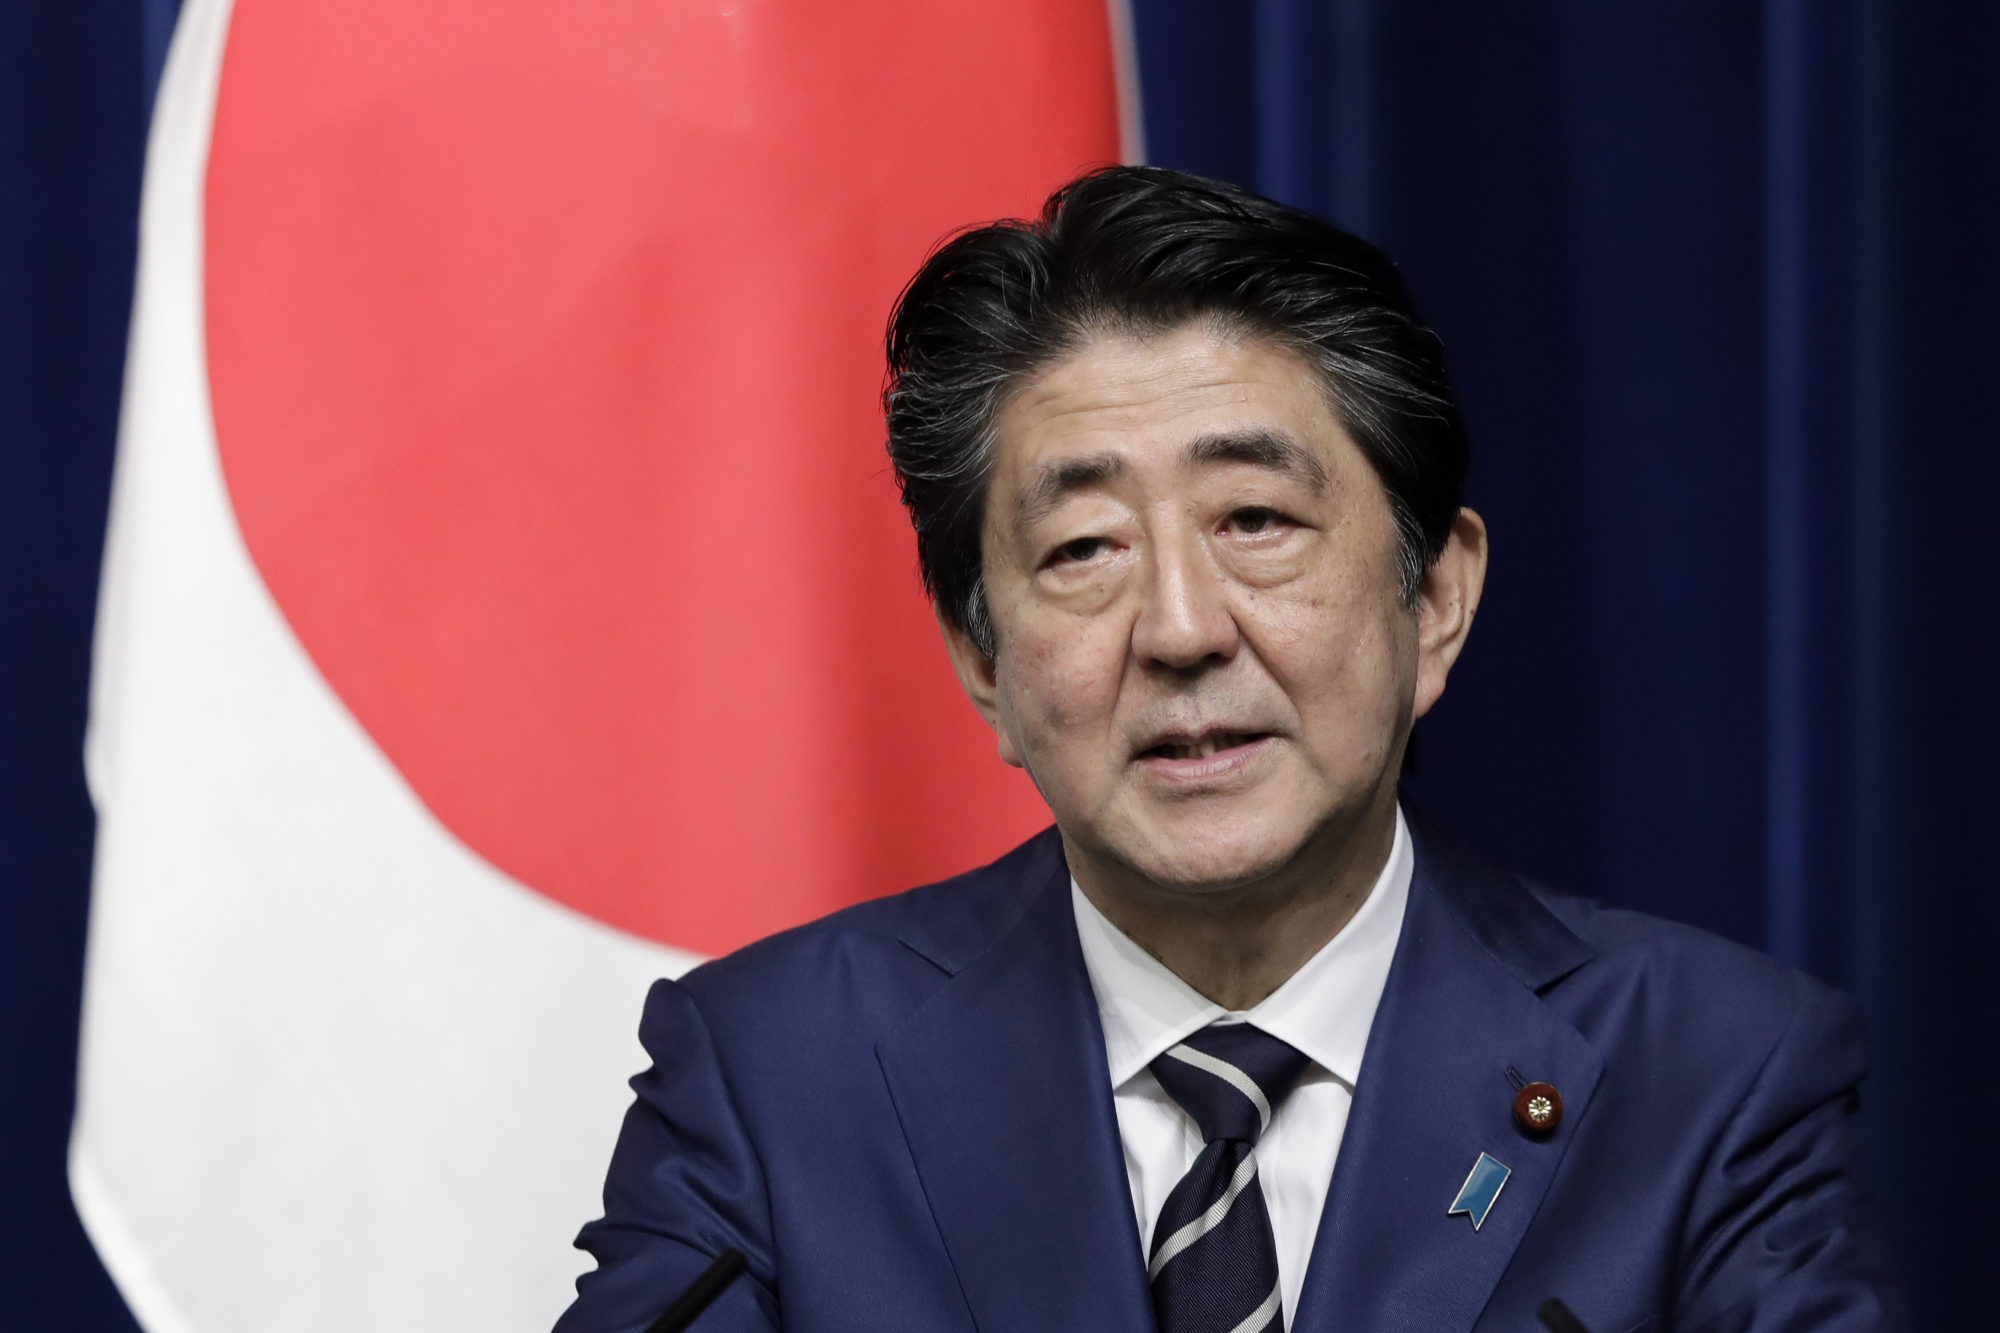 Prime Minister Shinzo Abe's Cabinet on Friday approved a draft budget for fiscal 2019 that topped ¥100 trillion for the first time. | BLOOMBERG